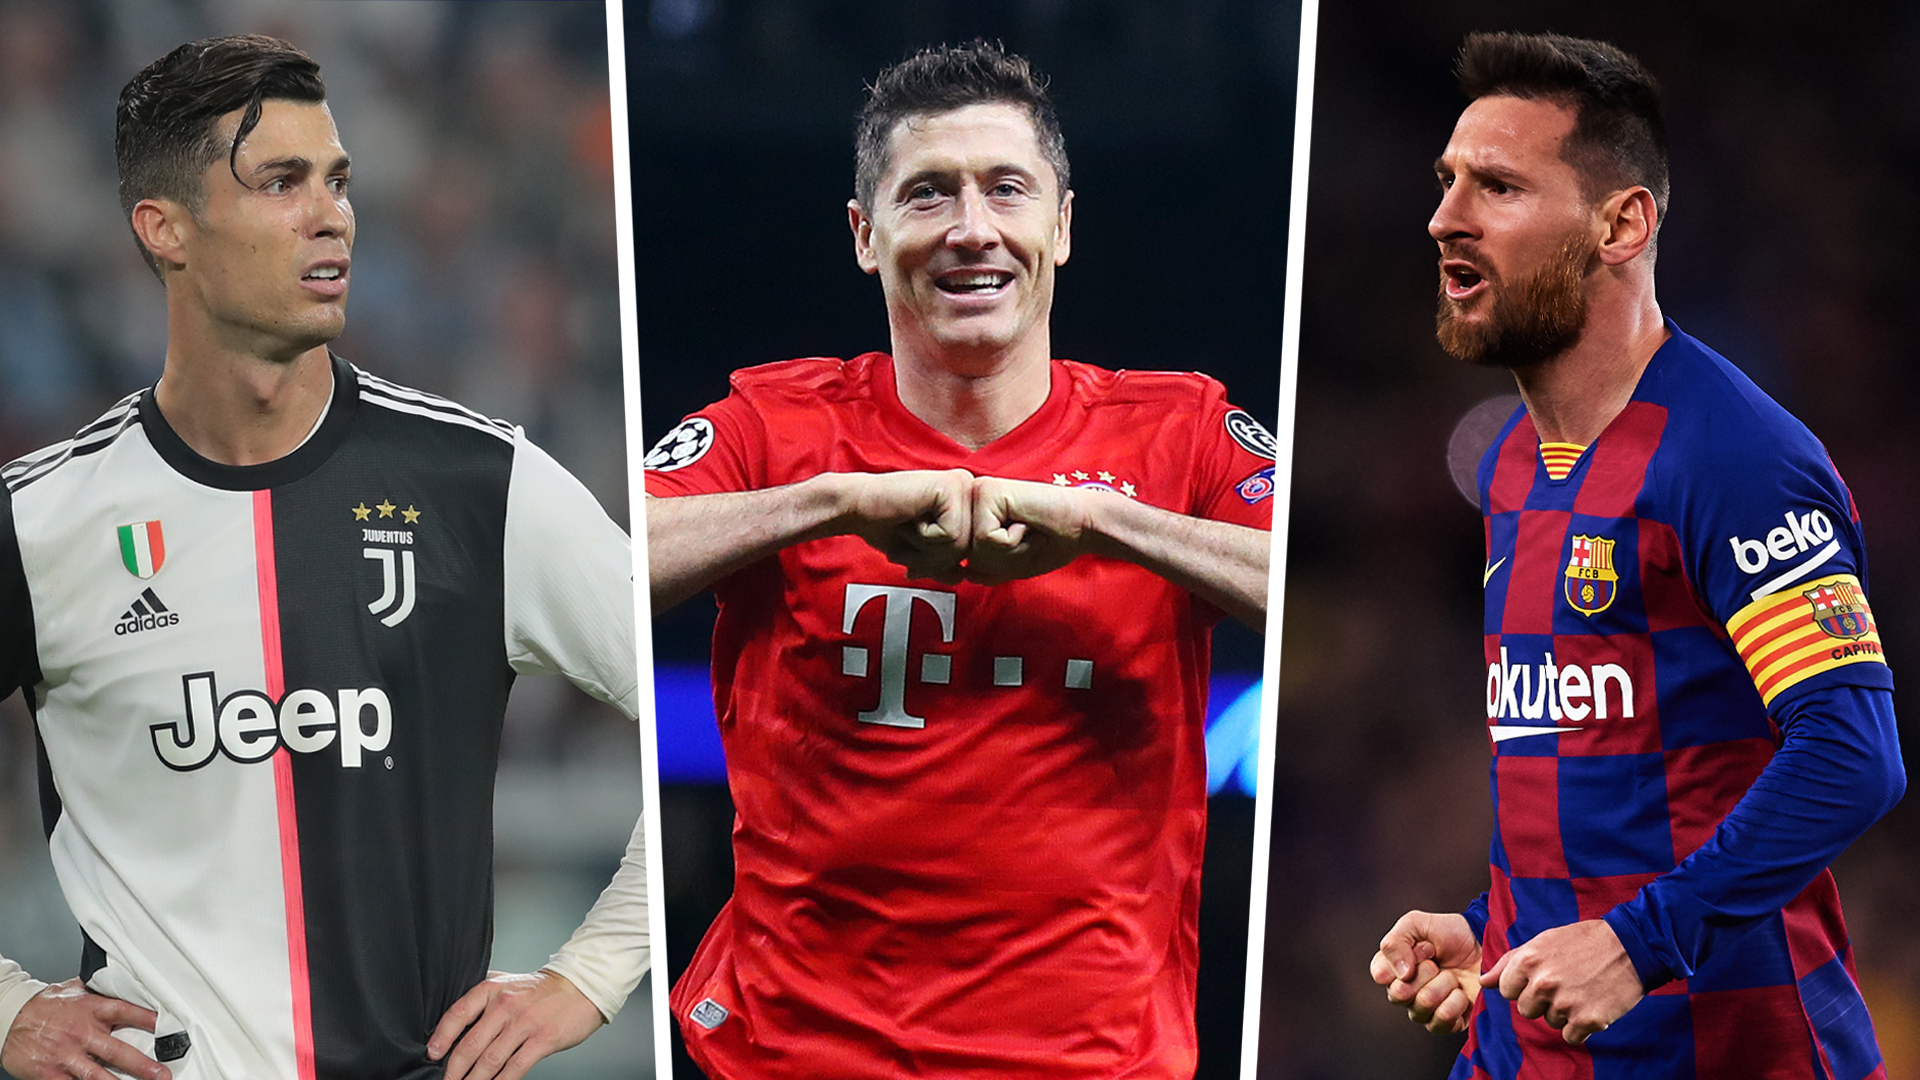 'Lewandowski is on par with Messi and Ronaldo' - Werner in awe at Bayern striker's form